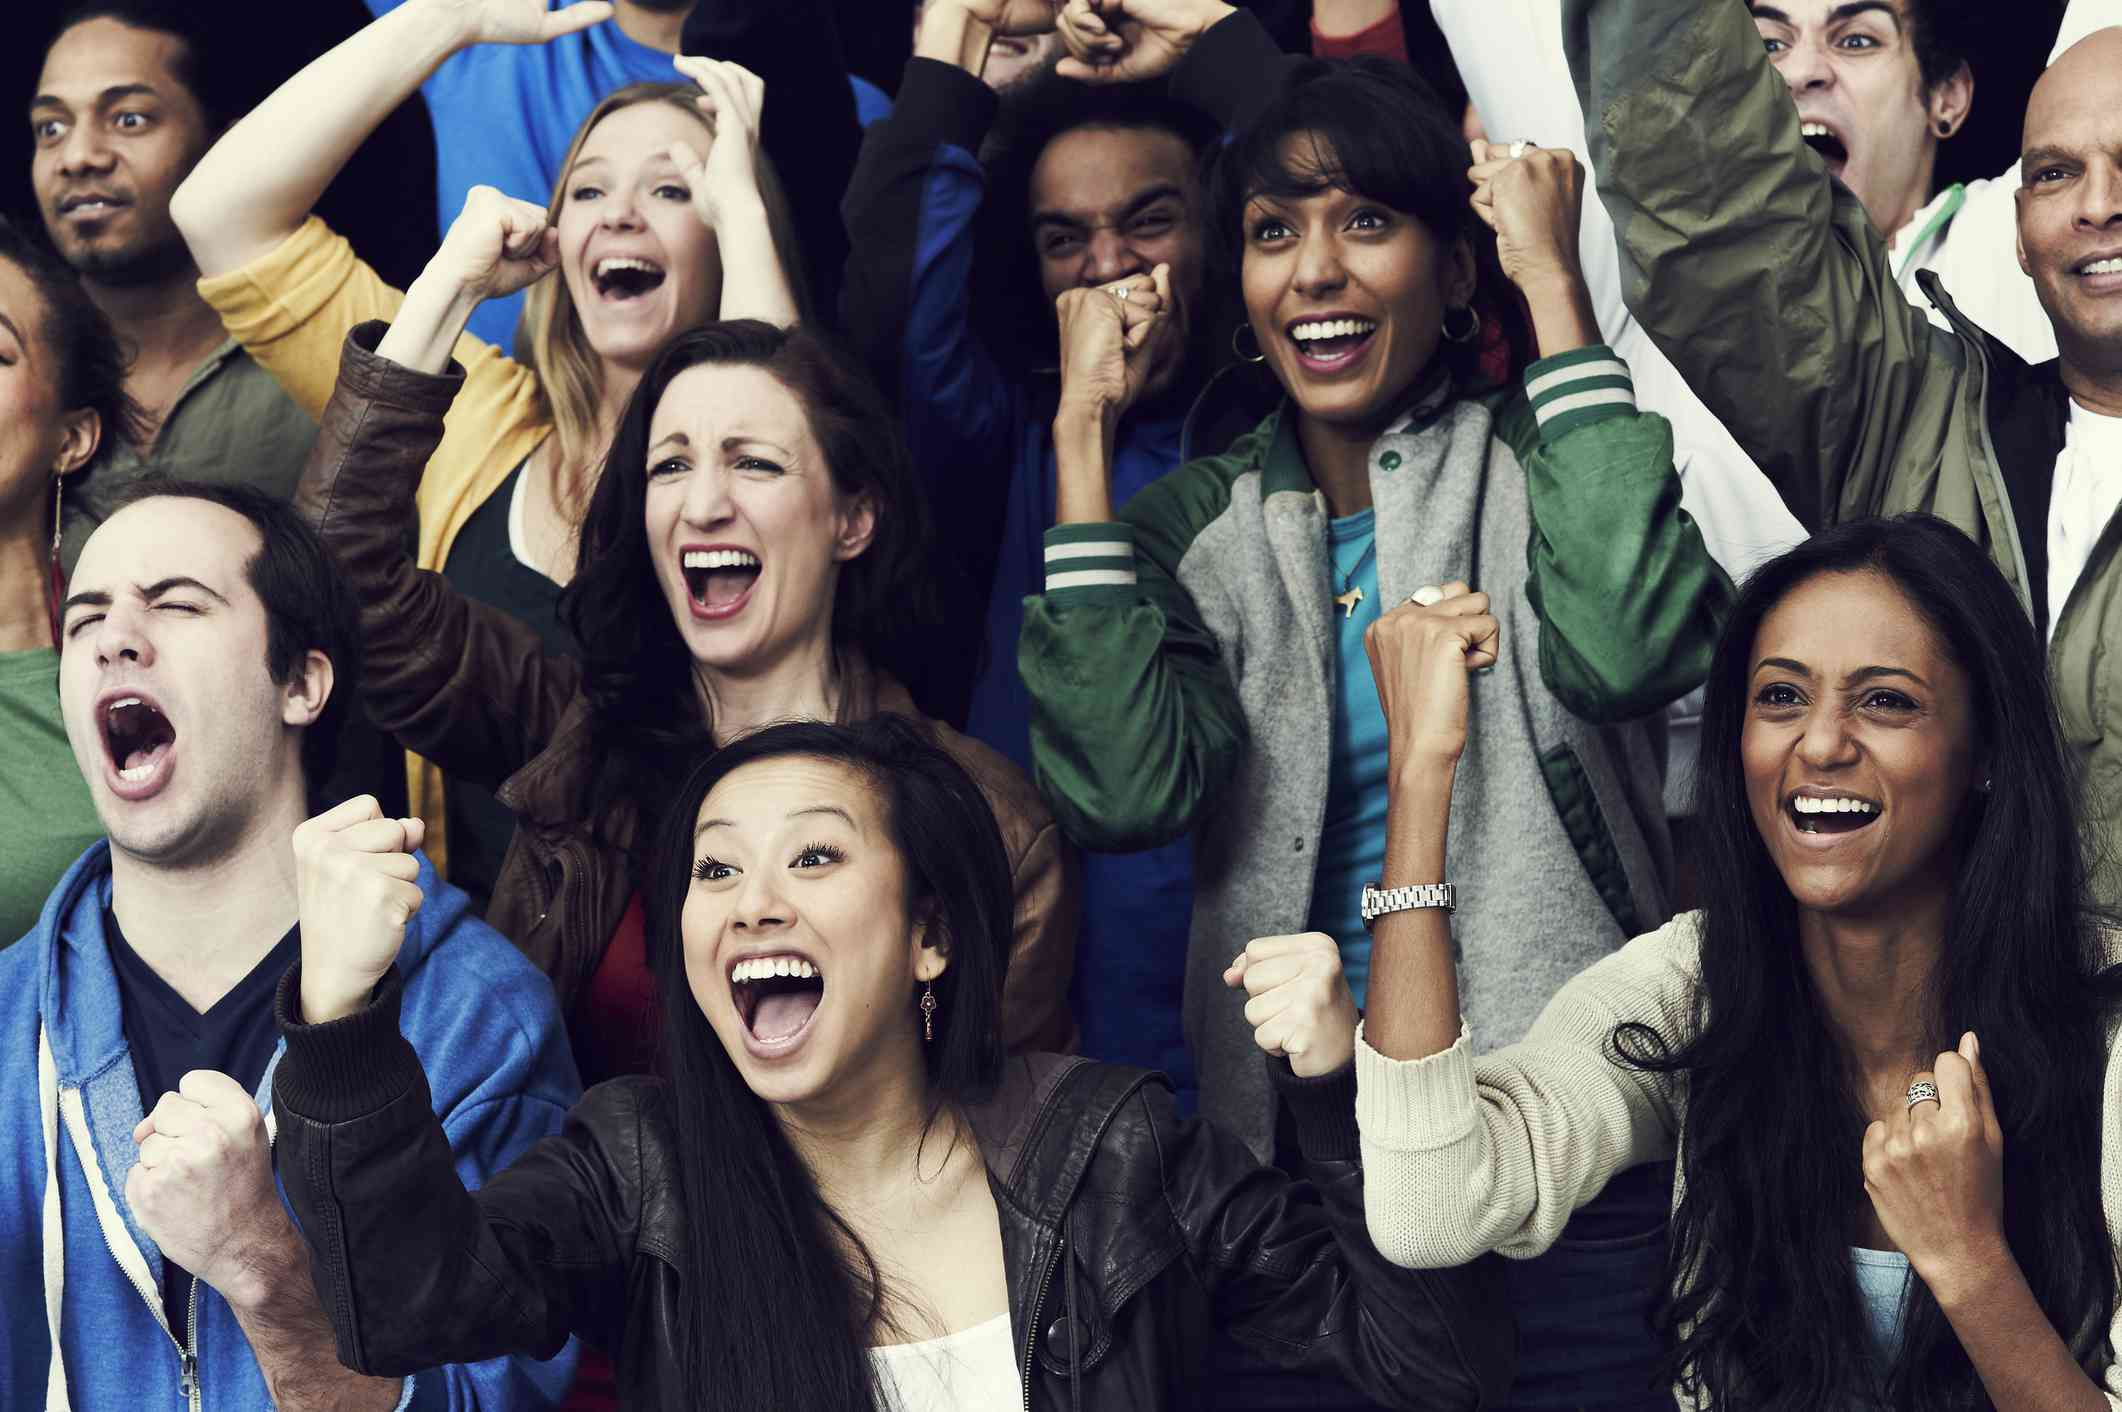 Group of young people cheering at sporting event